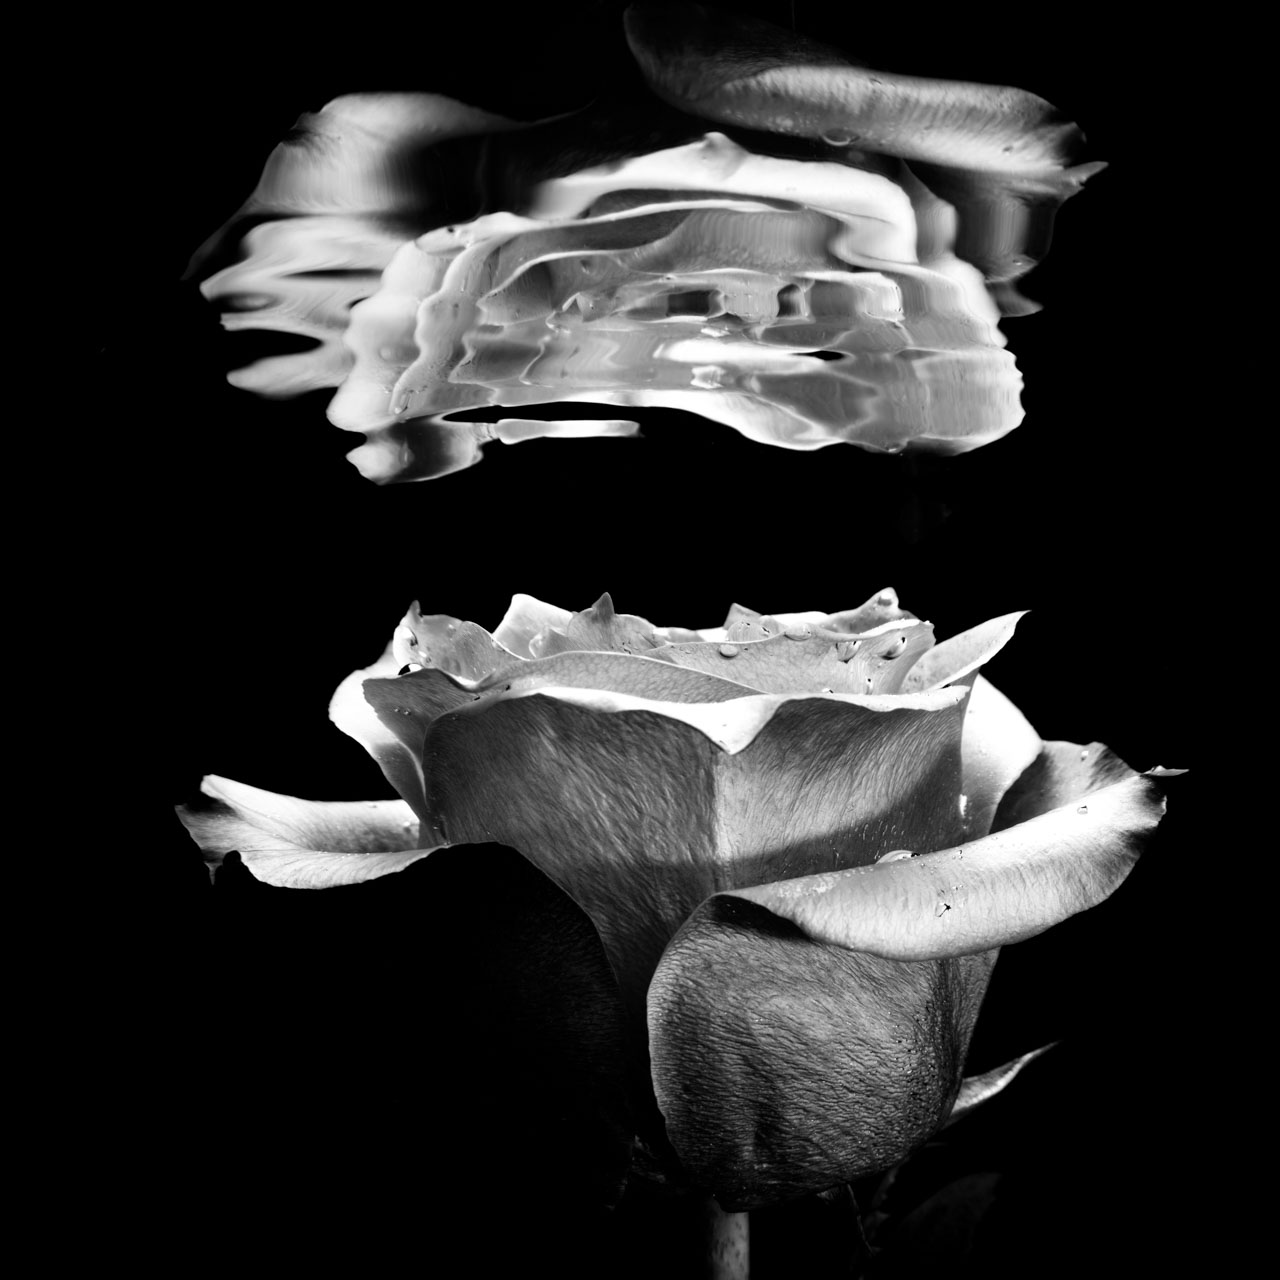 Monochrome image of a rose relecting underwater